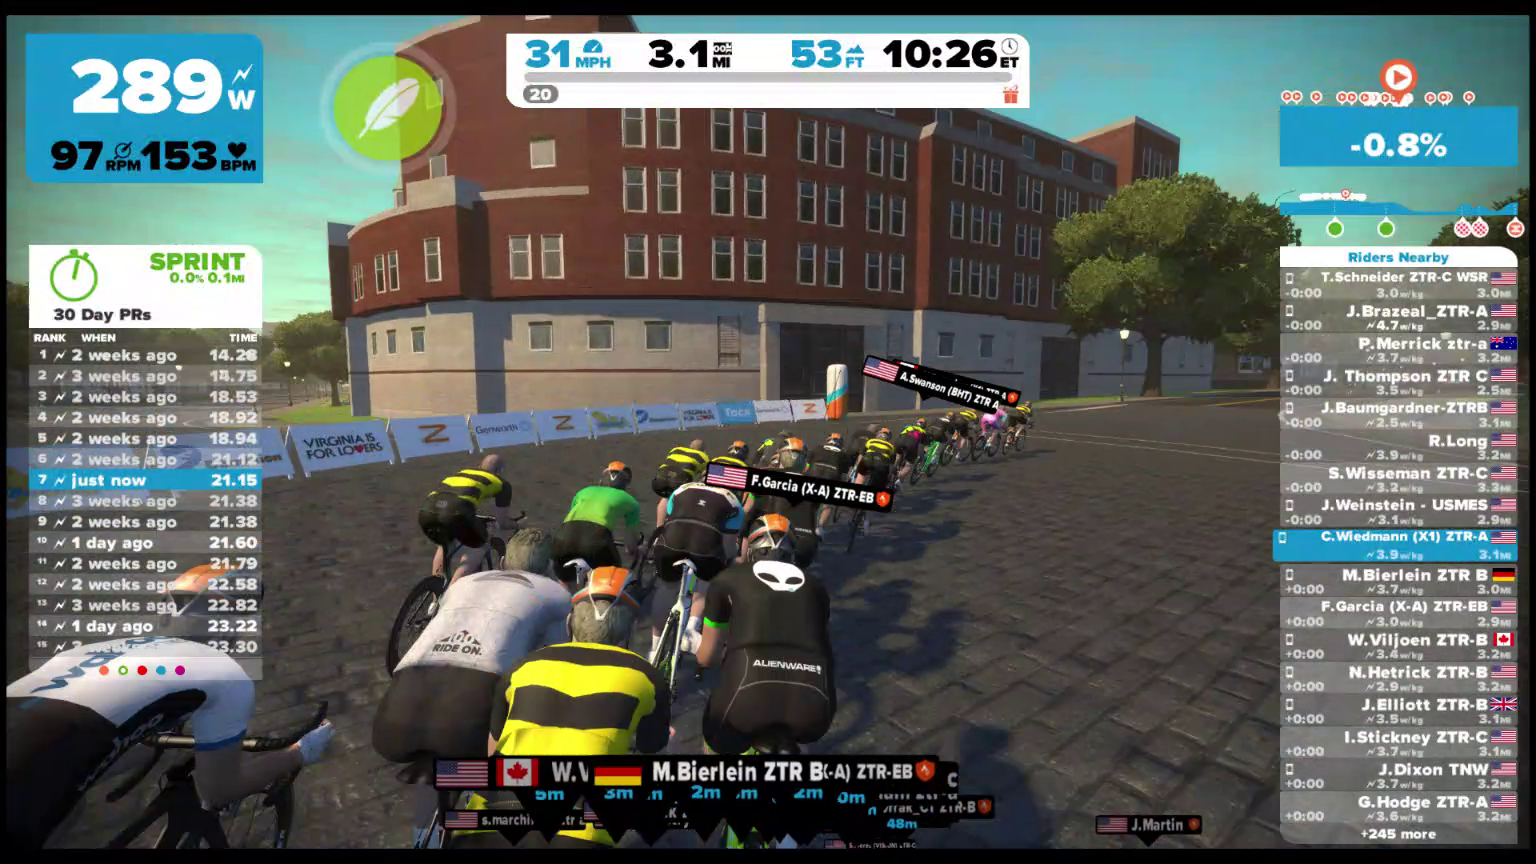 Virtual Online Cycling: What is ZTR?